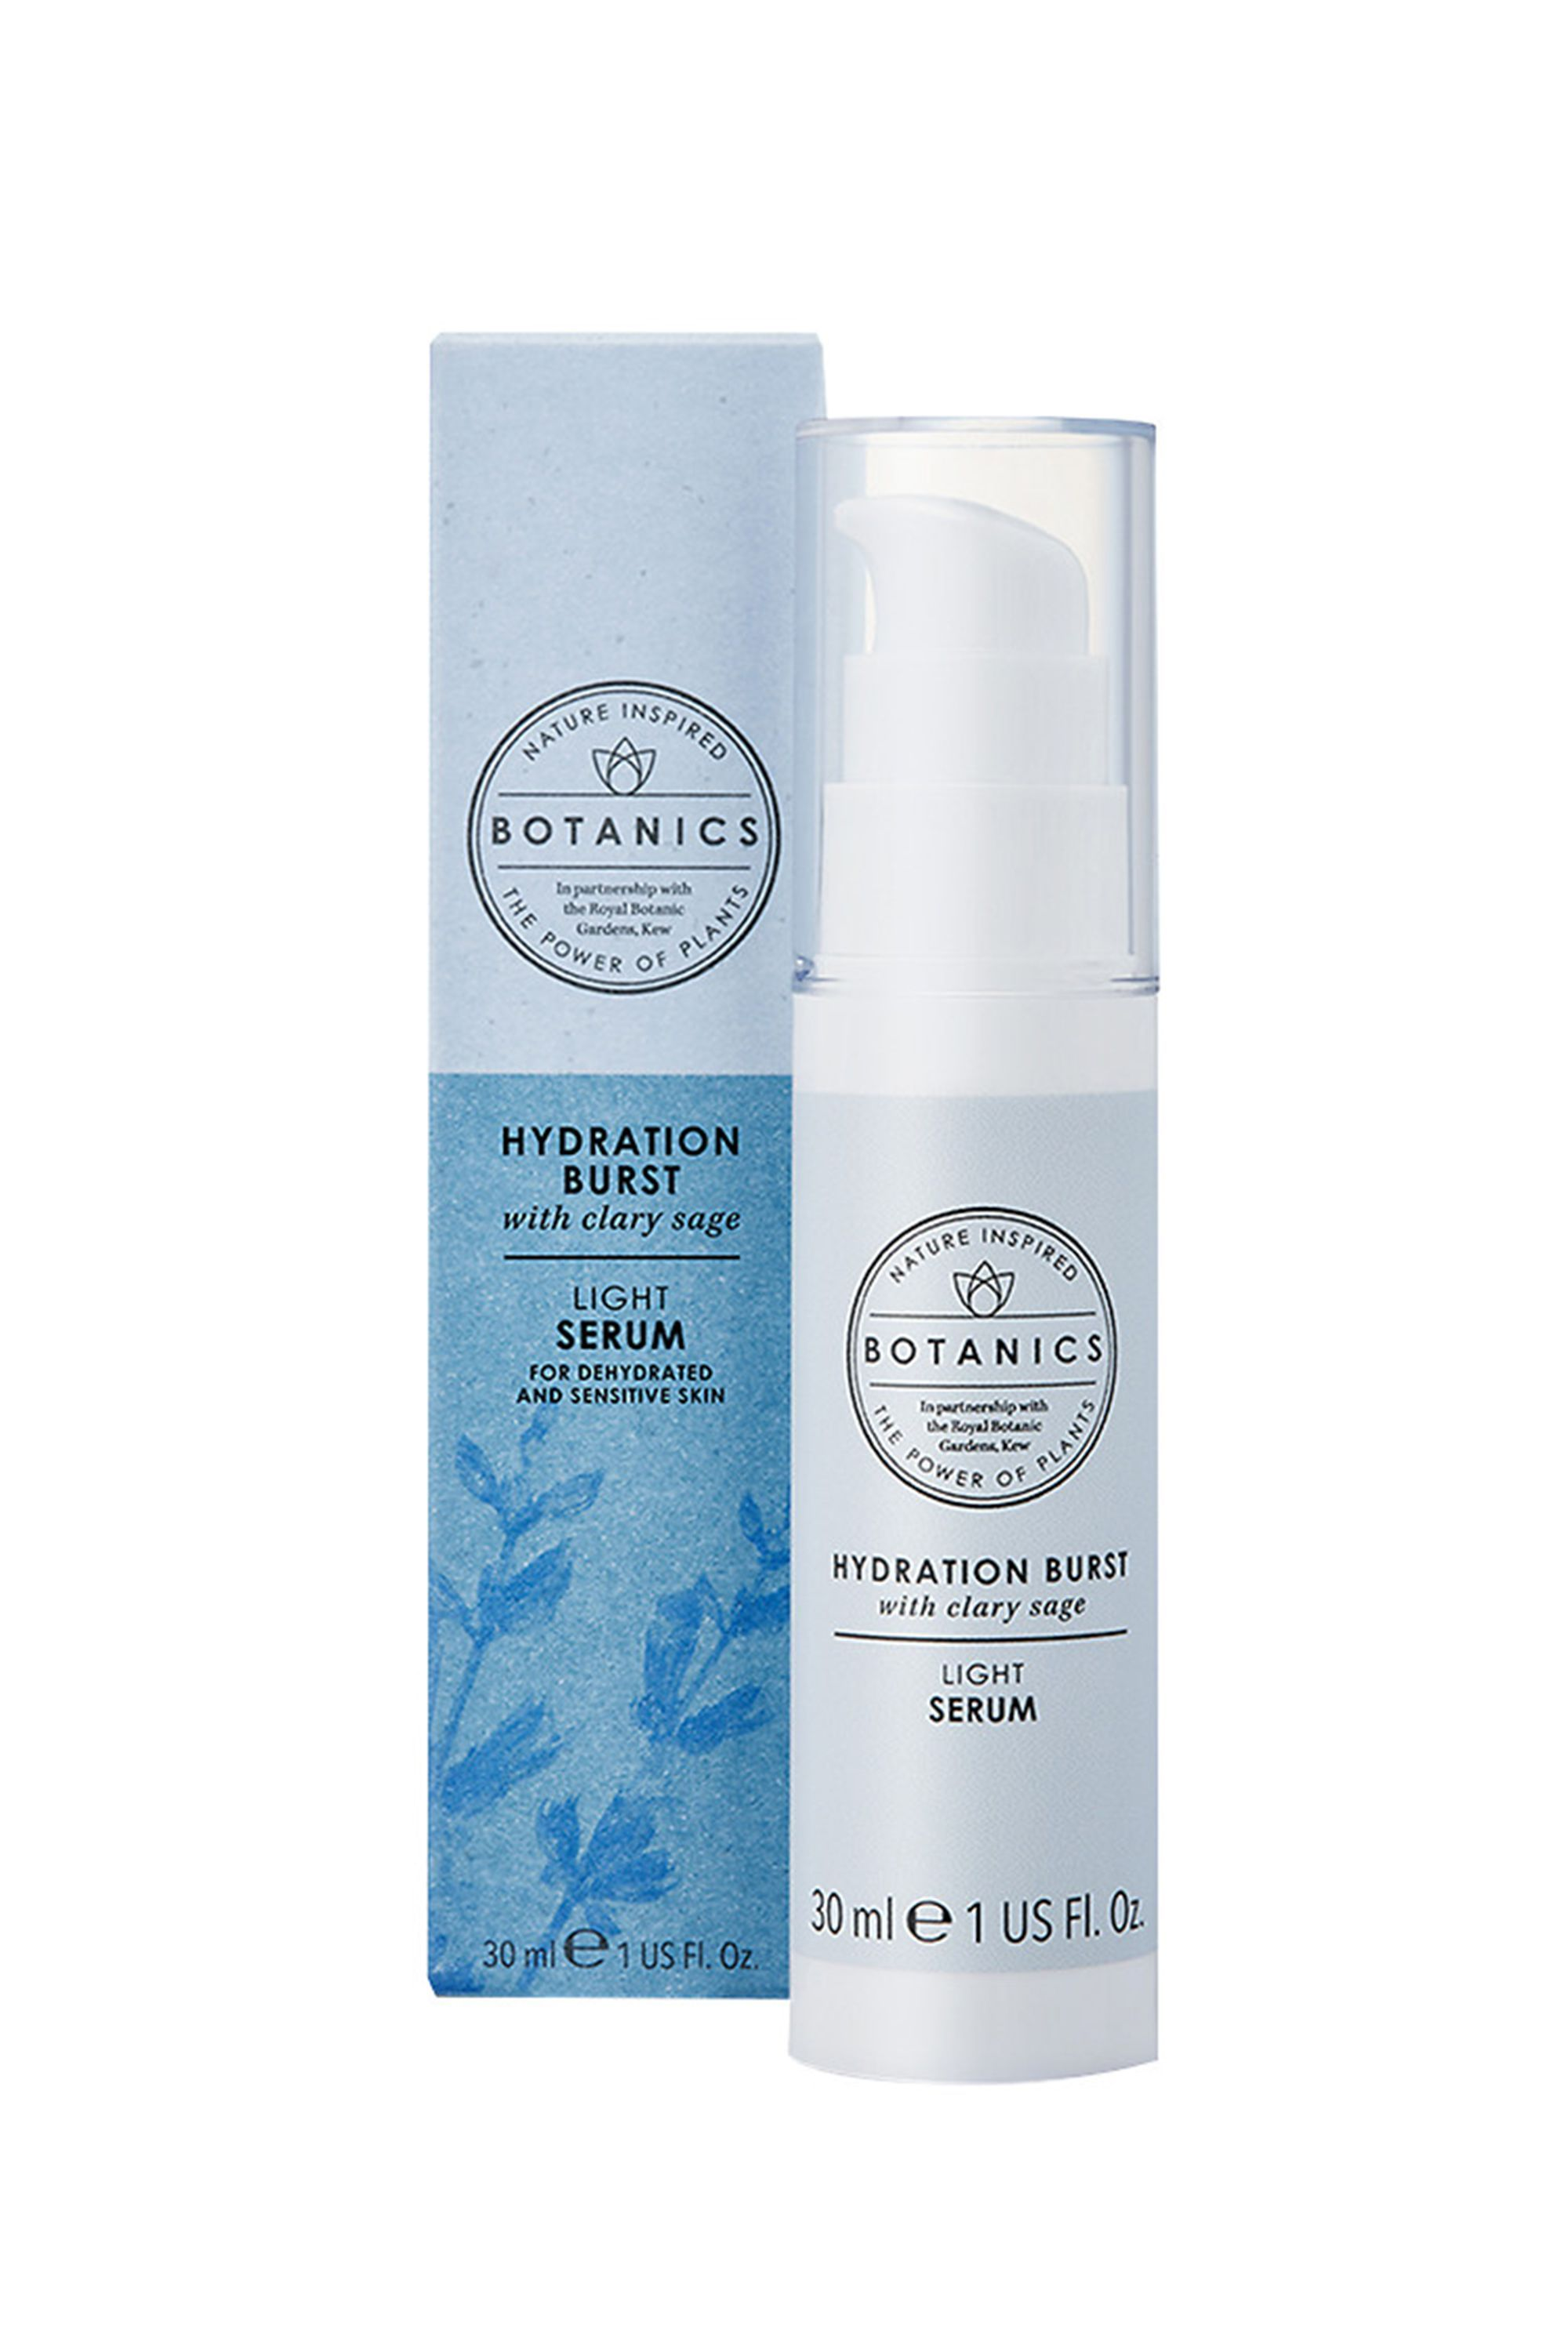 The Hydrator Hydration Burst Light Serum Botanics ulta.com $12.79 SHOP NOW Give thirsty skin a mega dose of moisture that will prevent it from feeling parched for a full day.